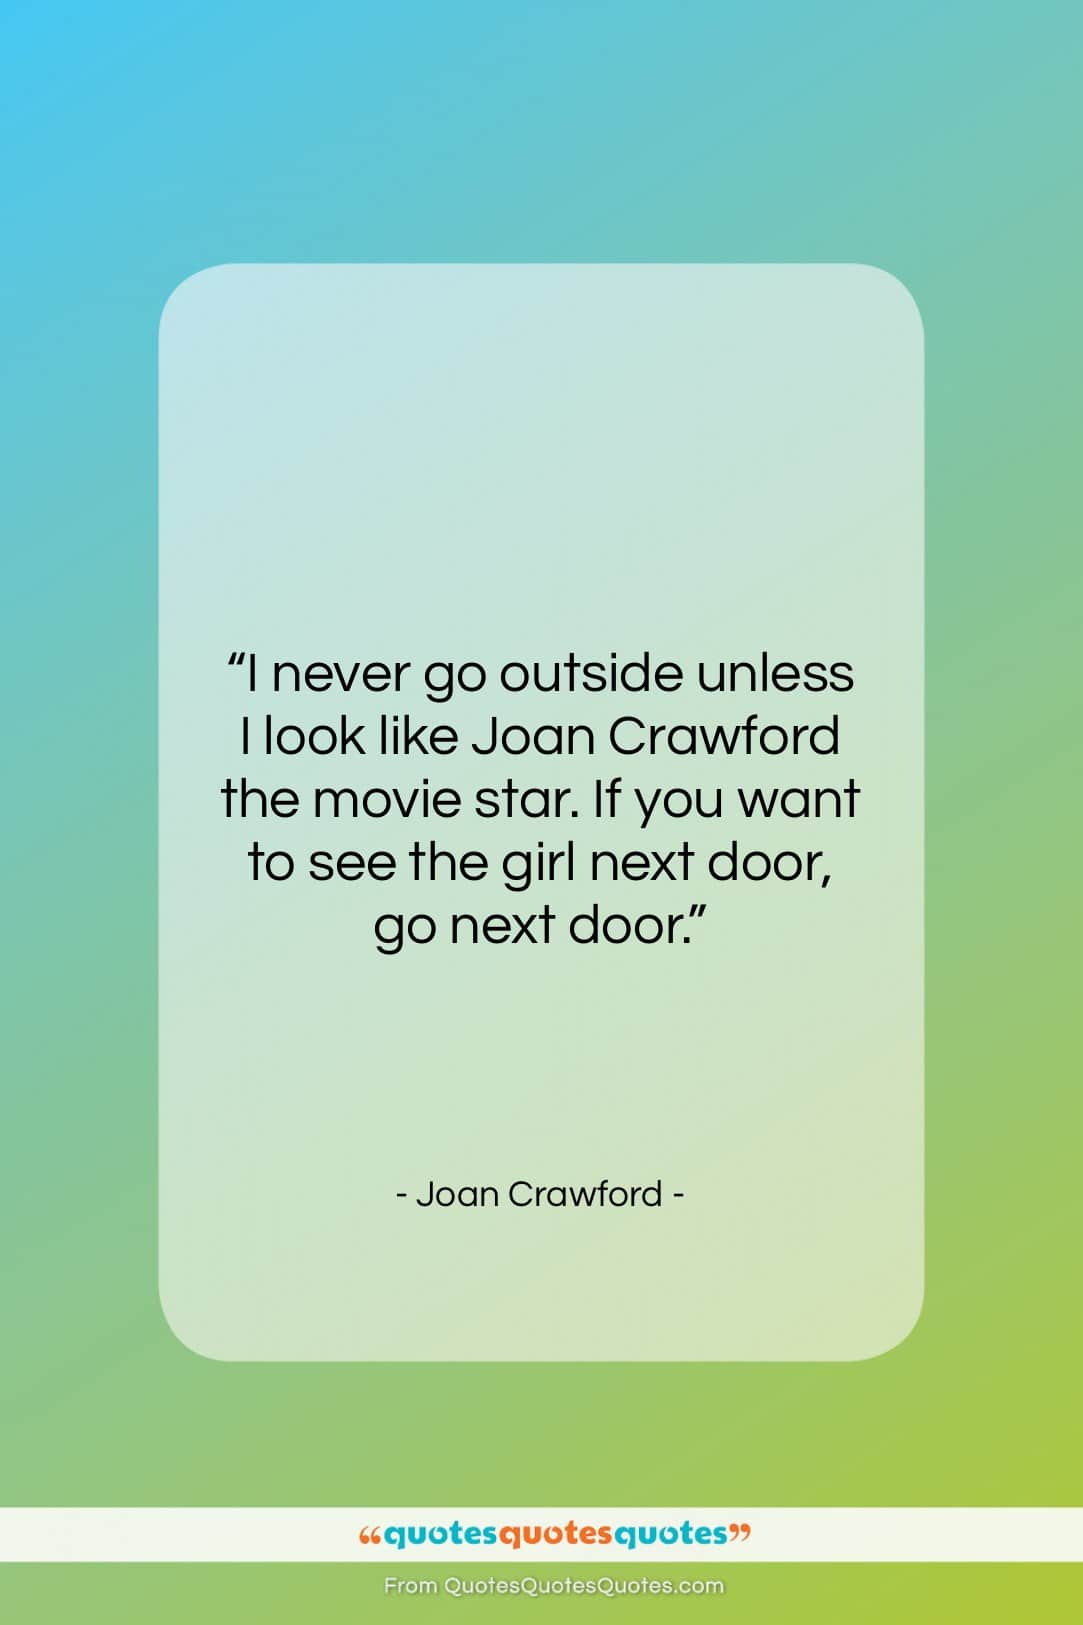 """Joan Crawford quote: """"I never go outside unless I look…""""- at QuotesQuotesQuotes.com"""